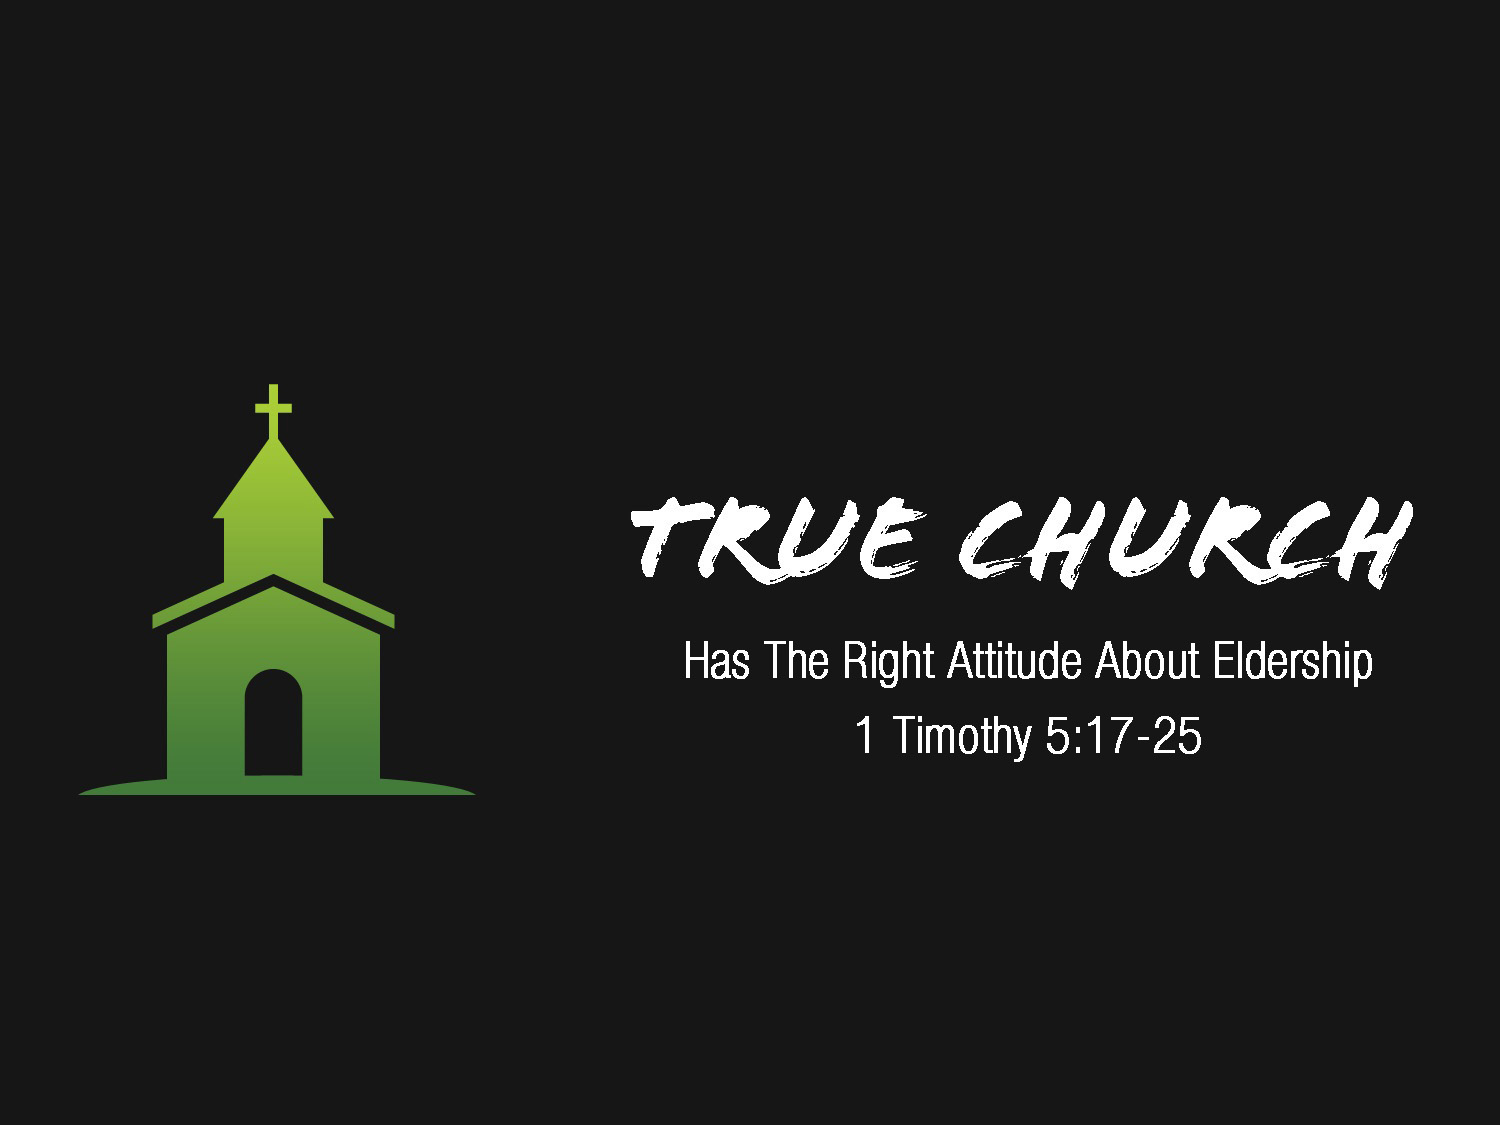 1 Timothy 5v17-25 True Church Has The Right Attitude About Elders